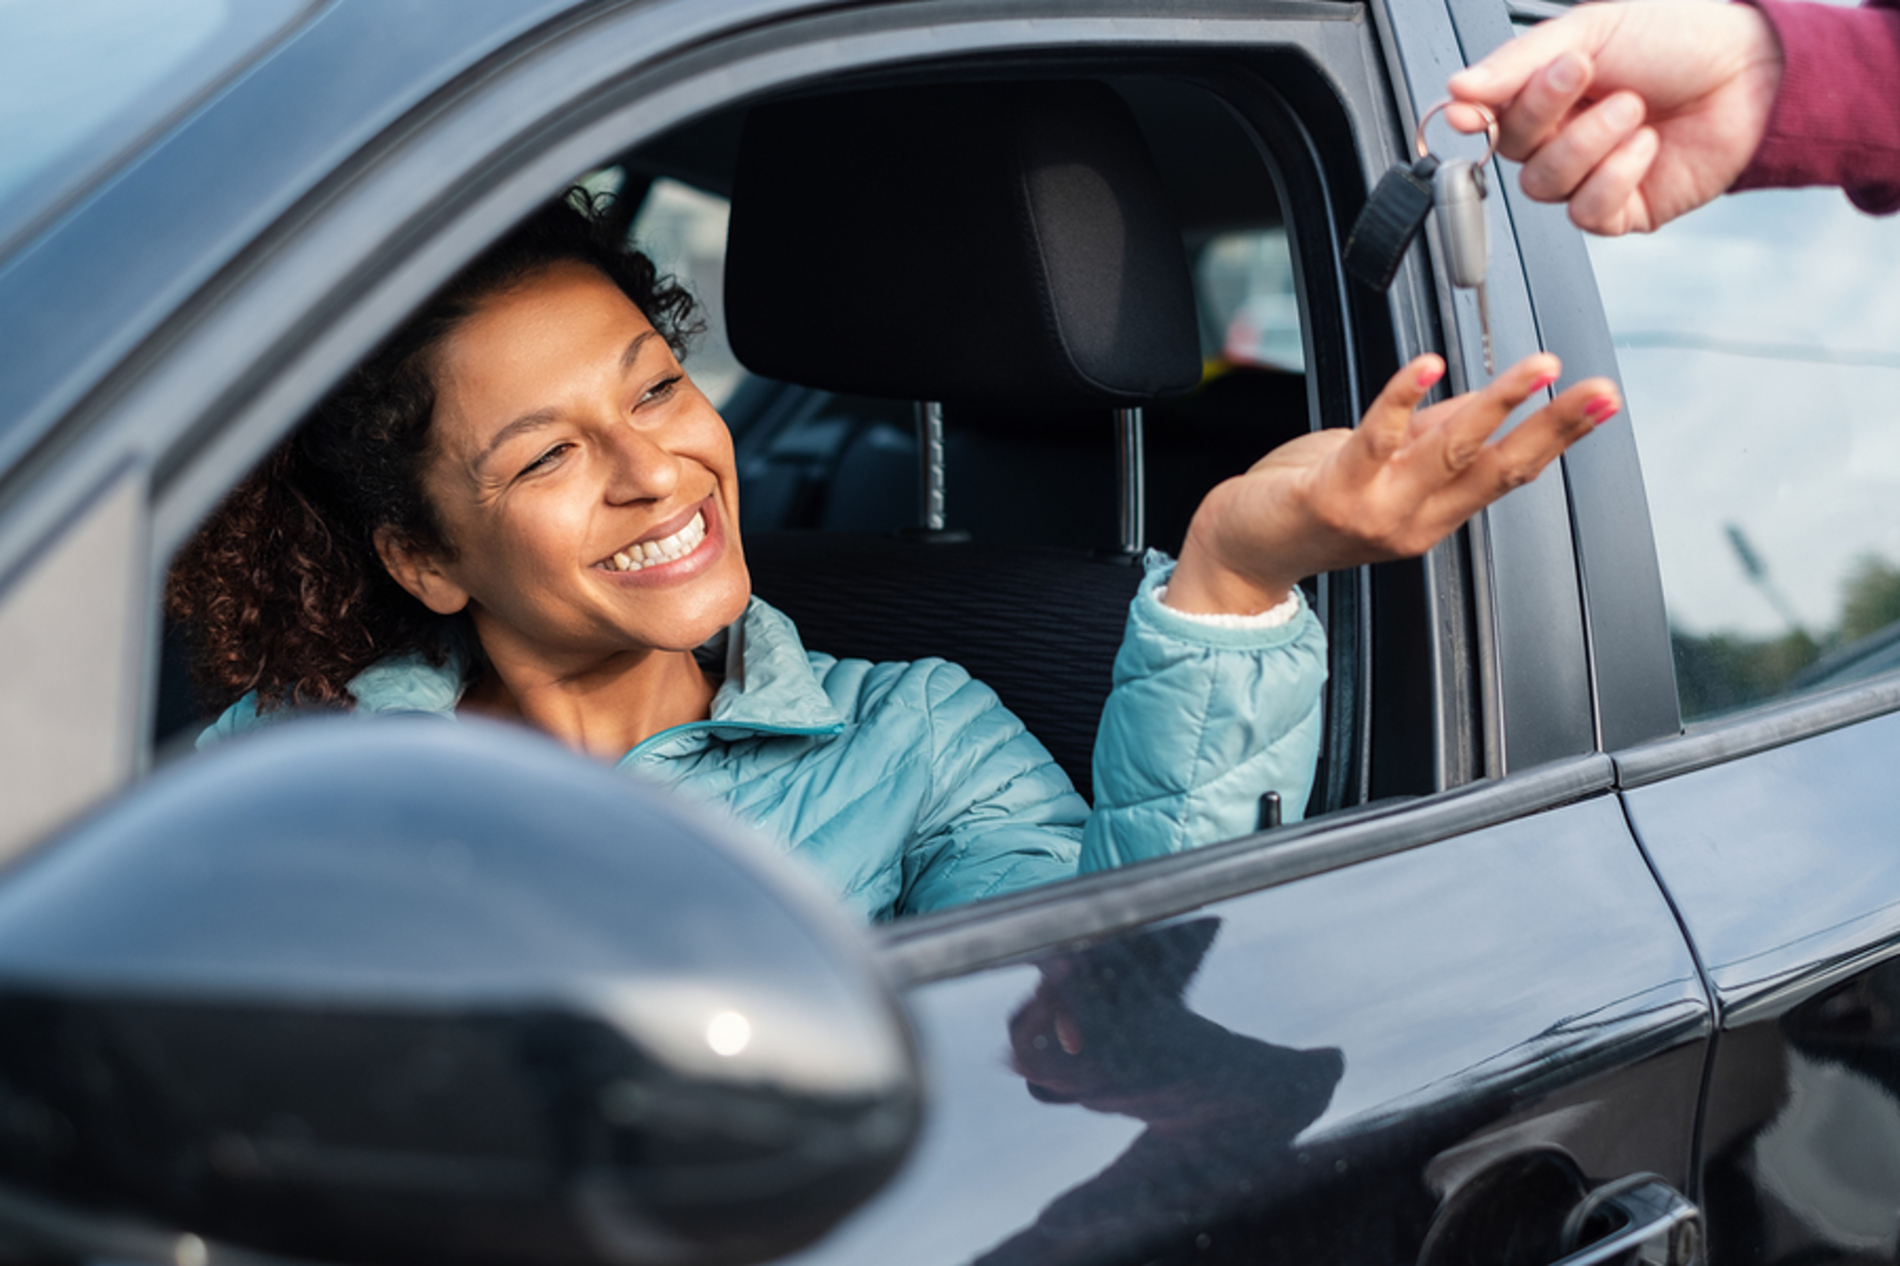 Woman reaching for keys from a car salesman.